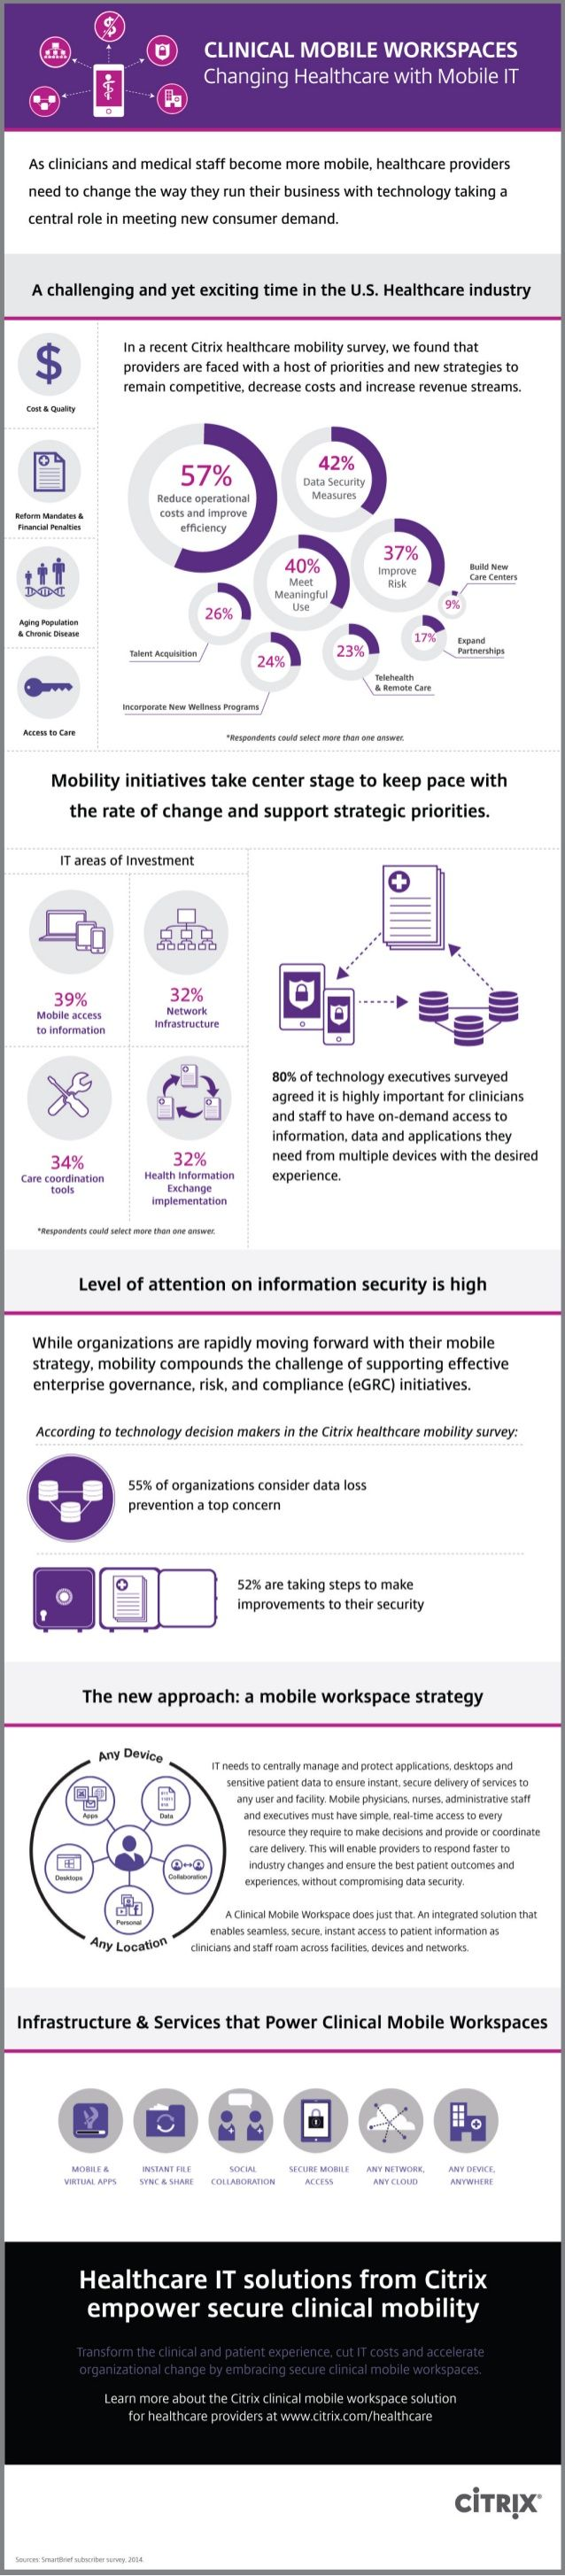 Clinical Mobile Workspaces: Changing Healthcare with Mobile IT